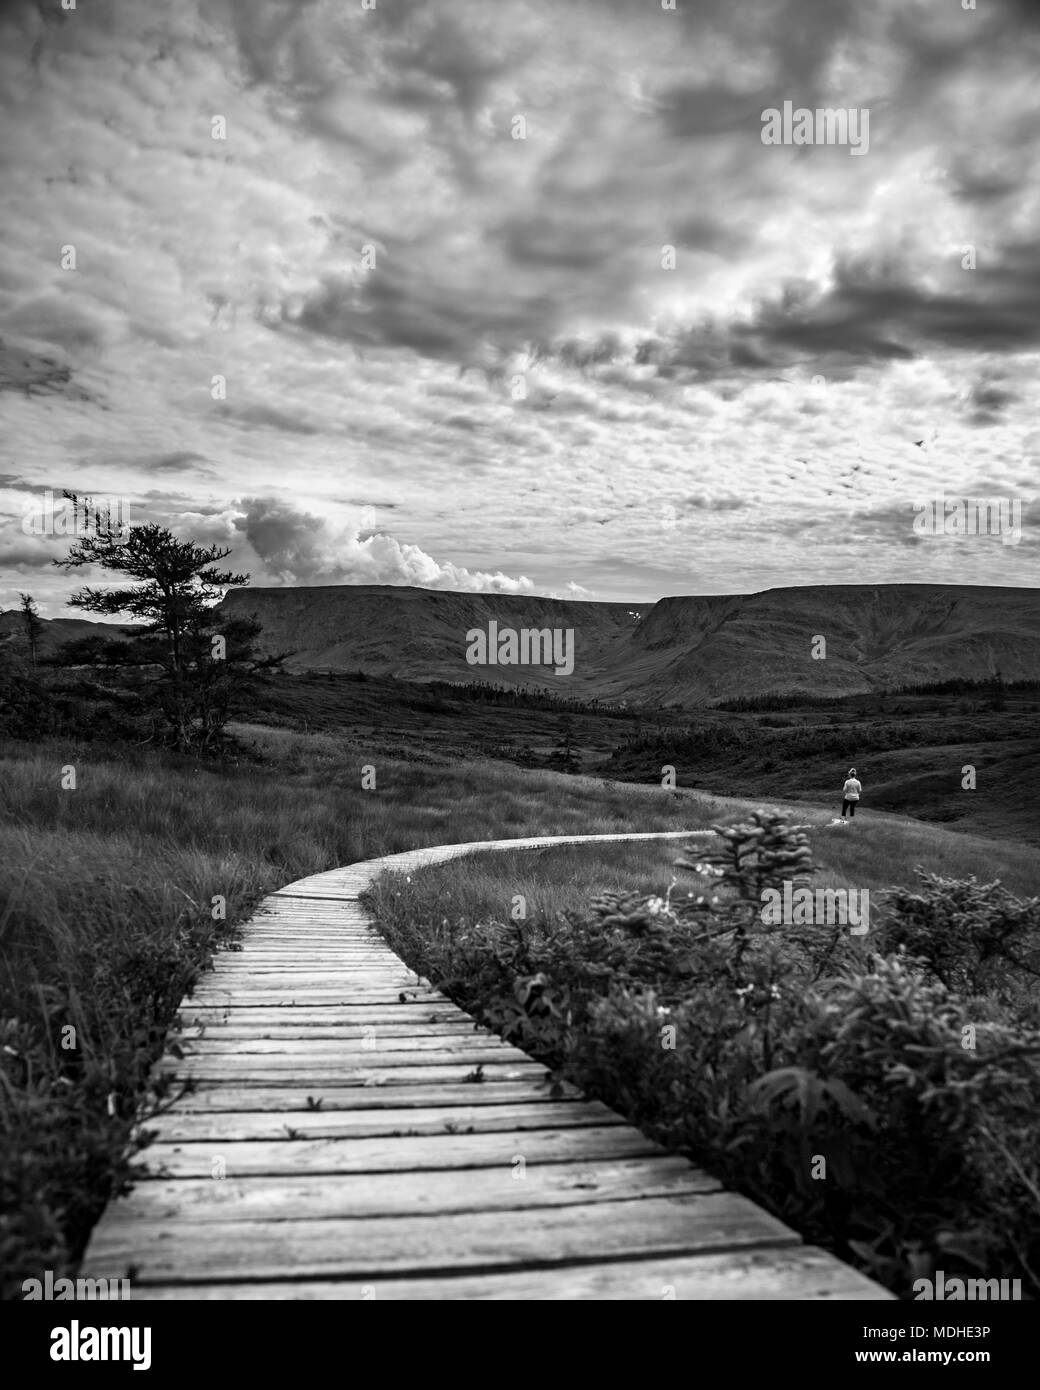 Black and white image of a wooden boardwalk stretching across a landscape with a man in the distance; Bonavista, Newfoundland and Labrador, Canada - Stock Image